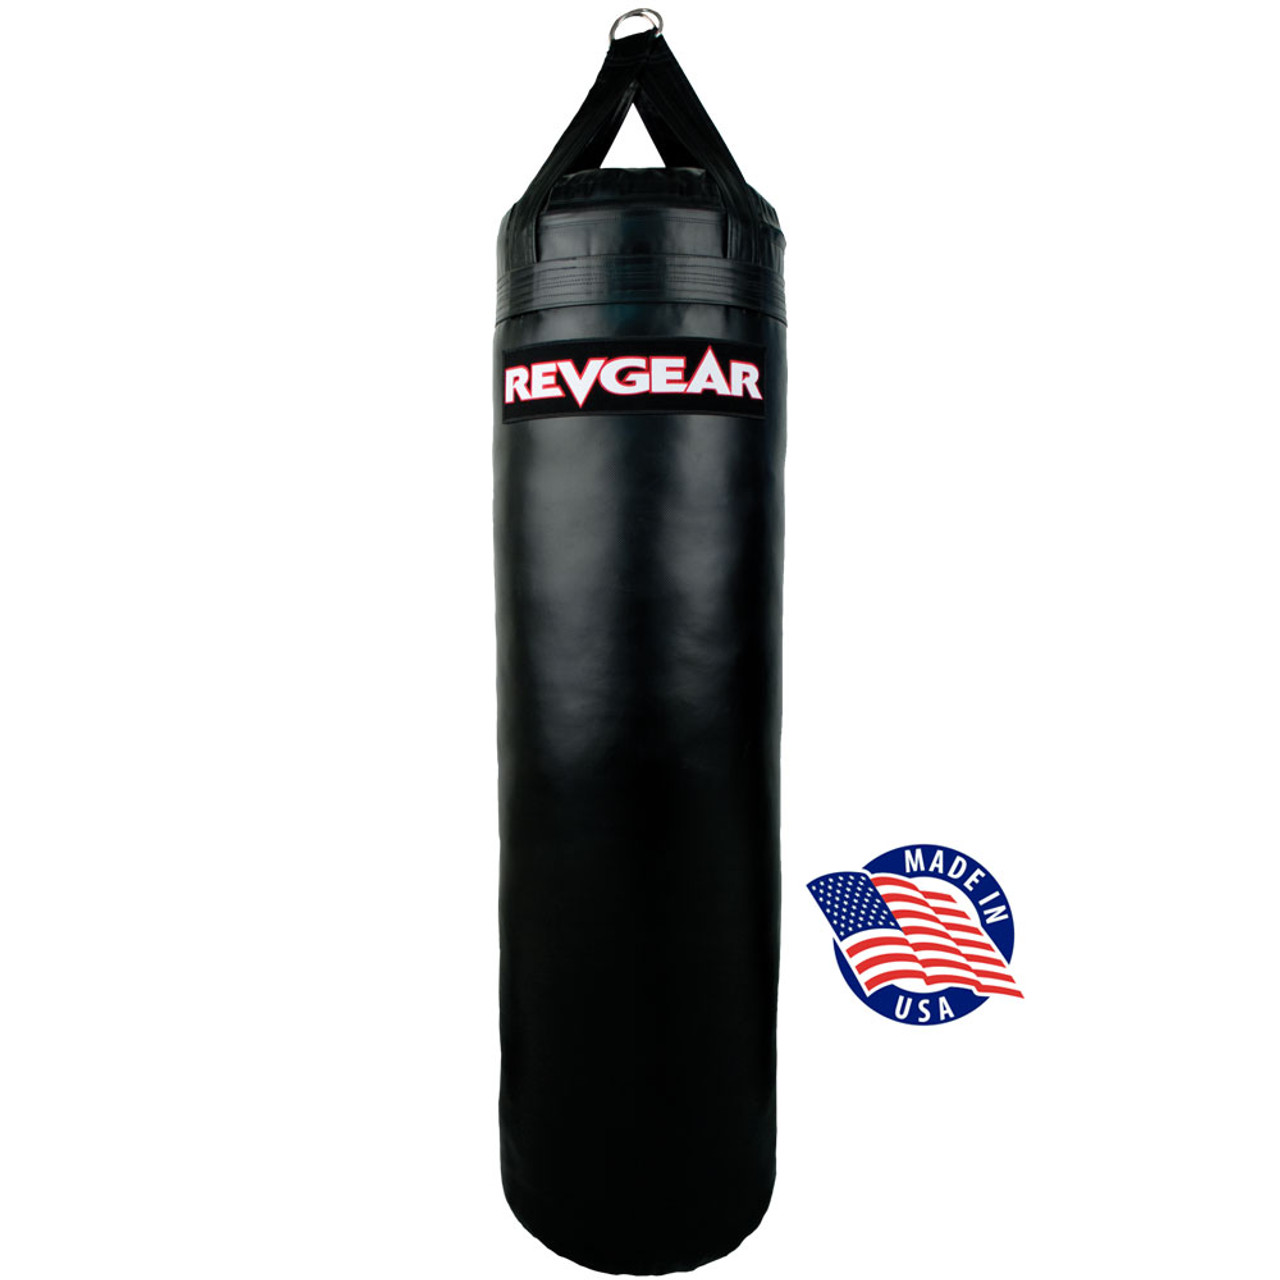 Four Foot Heavy Bag